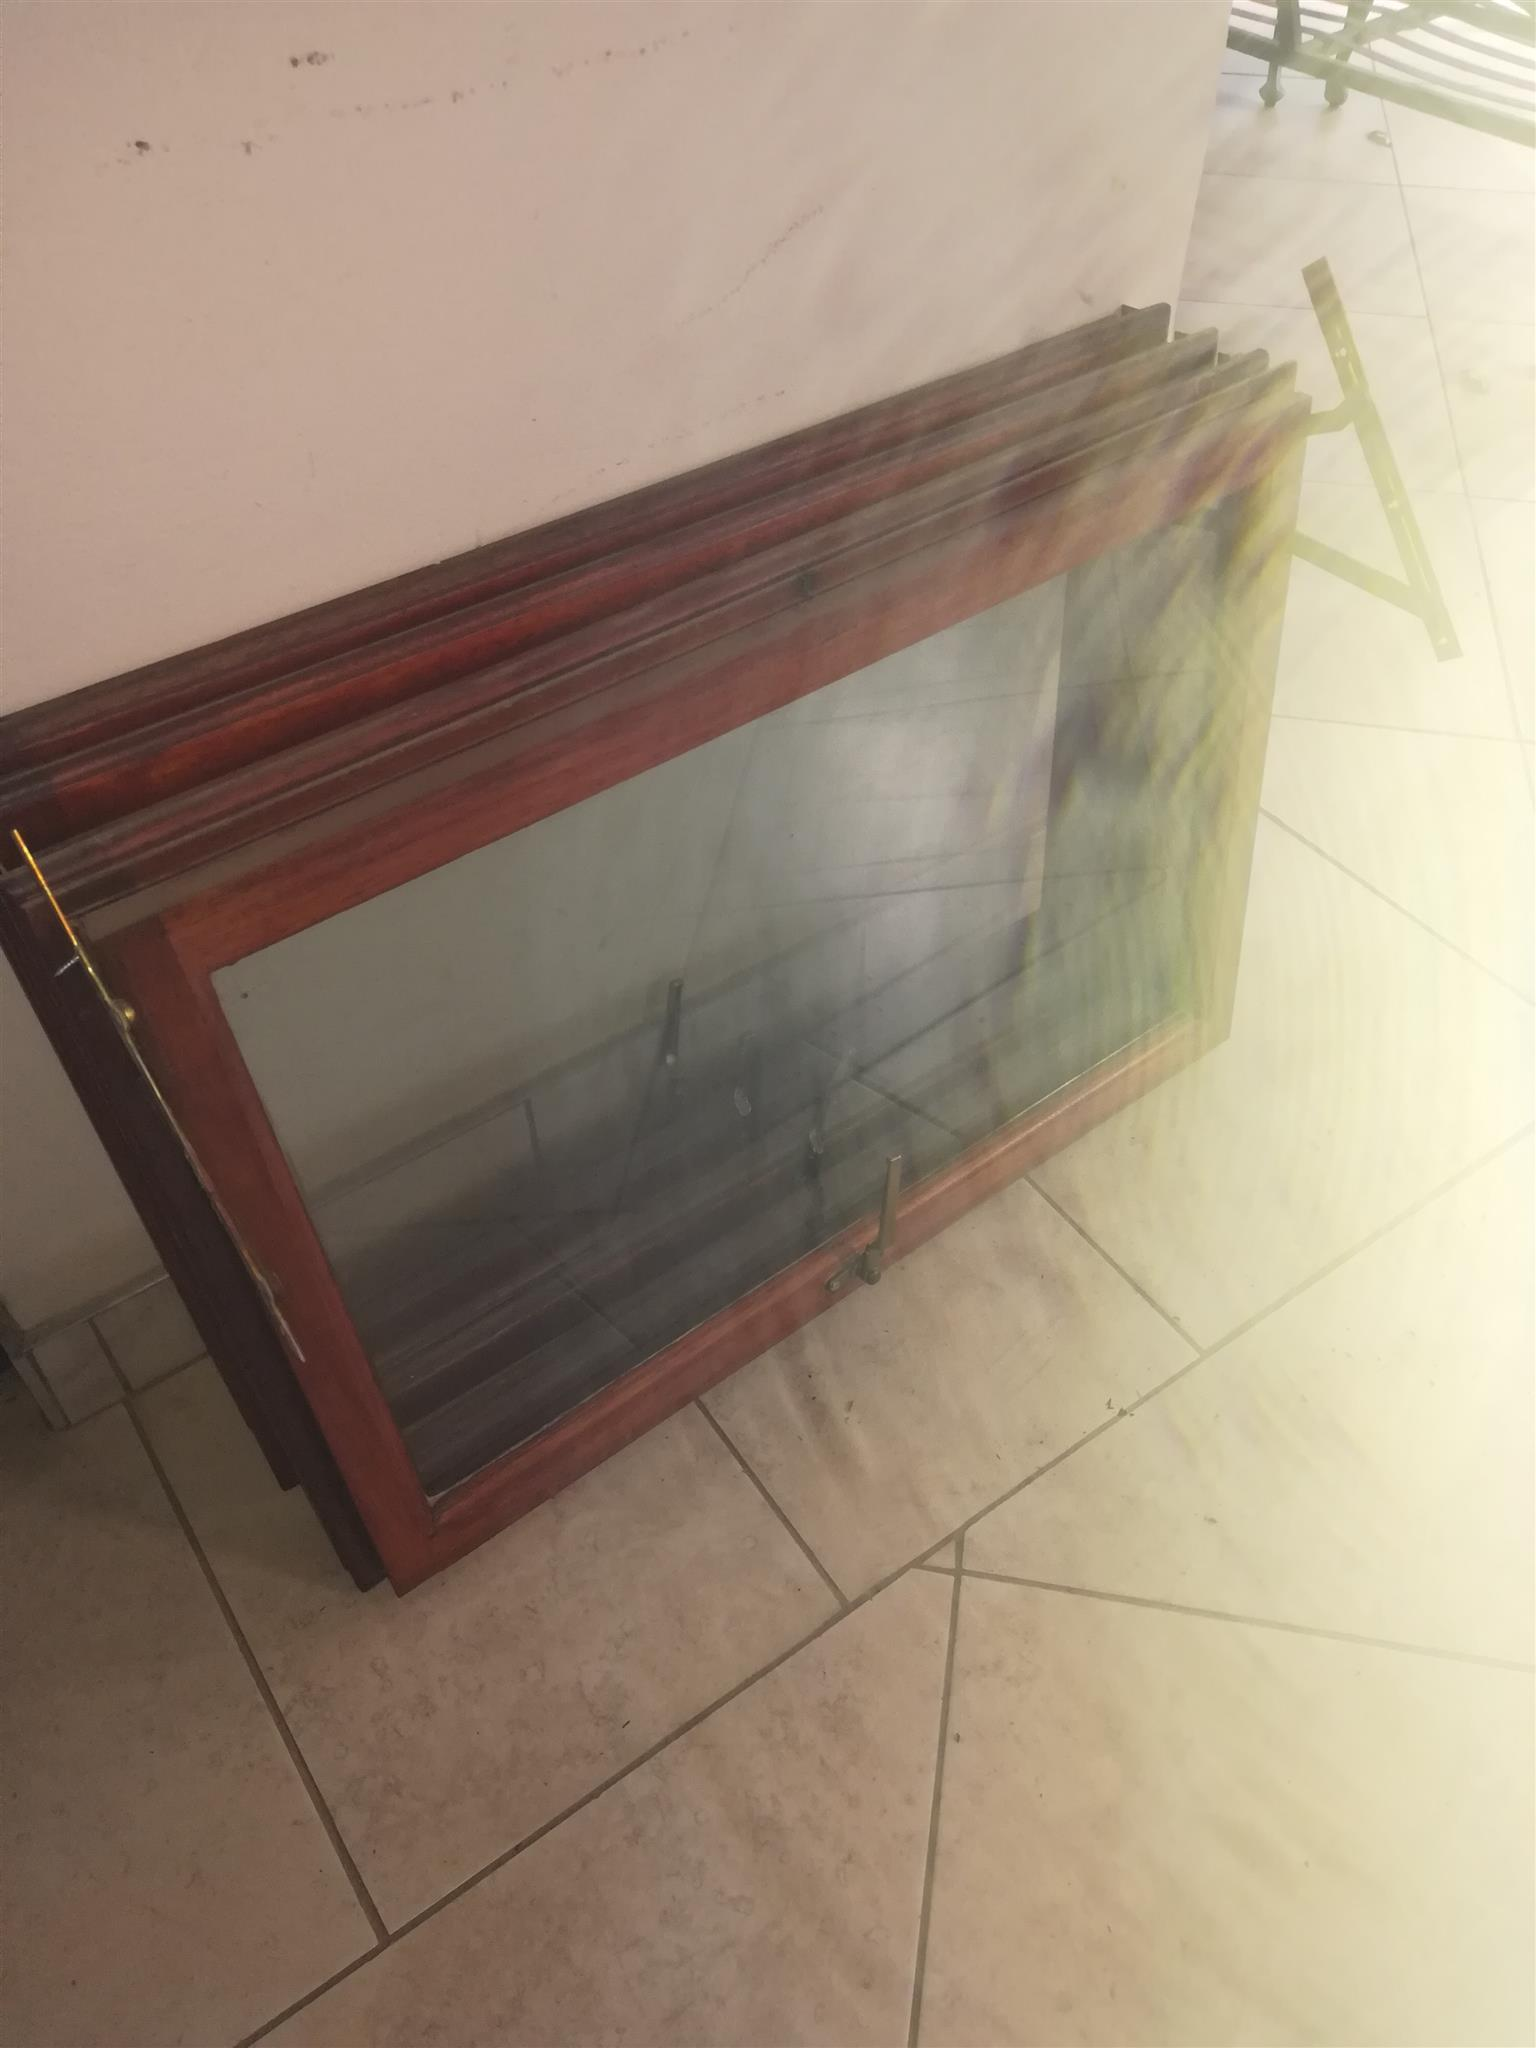 Safety window glass and wooden window frames. Price negotiable.